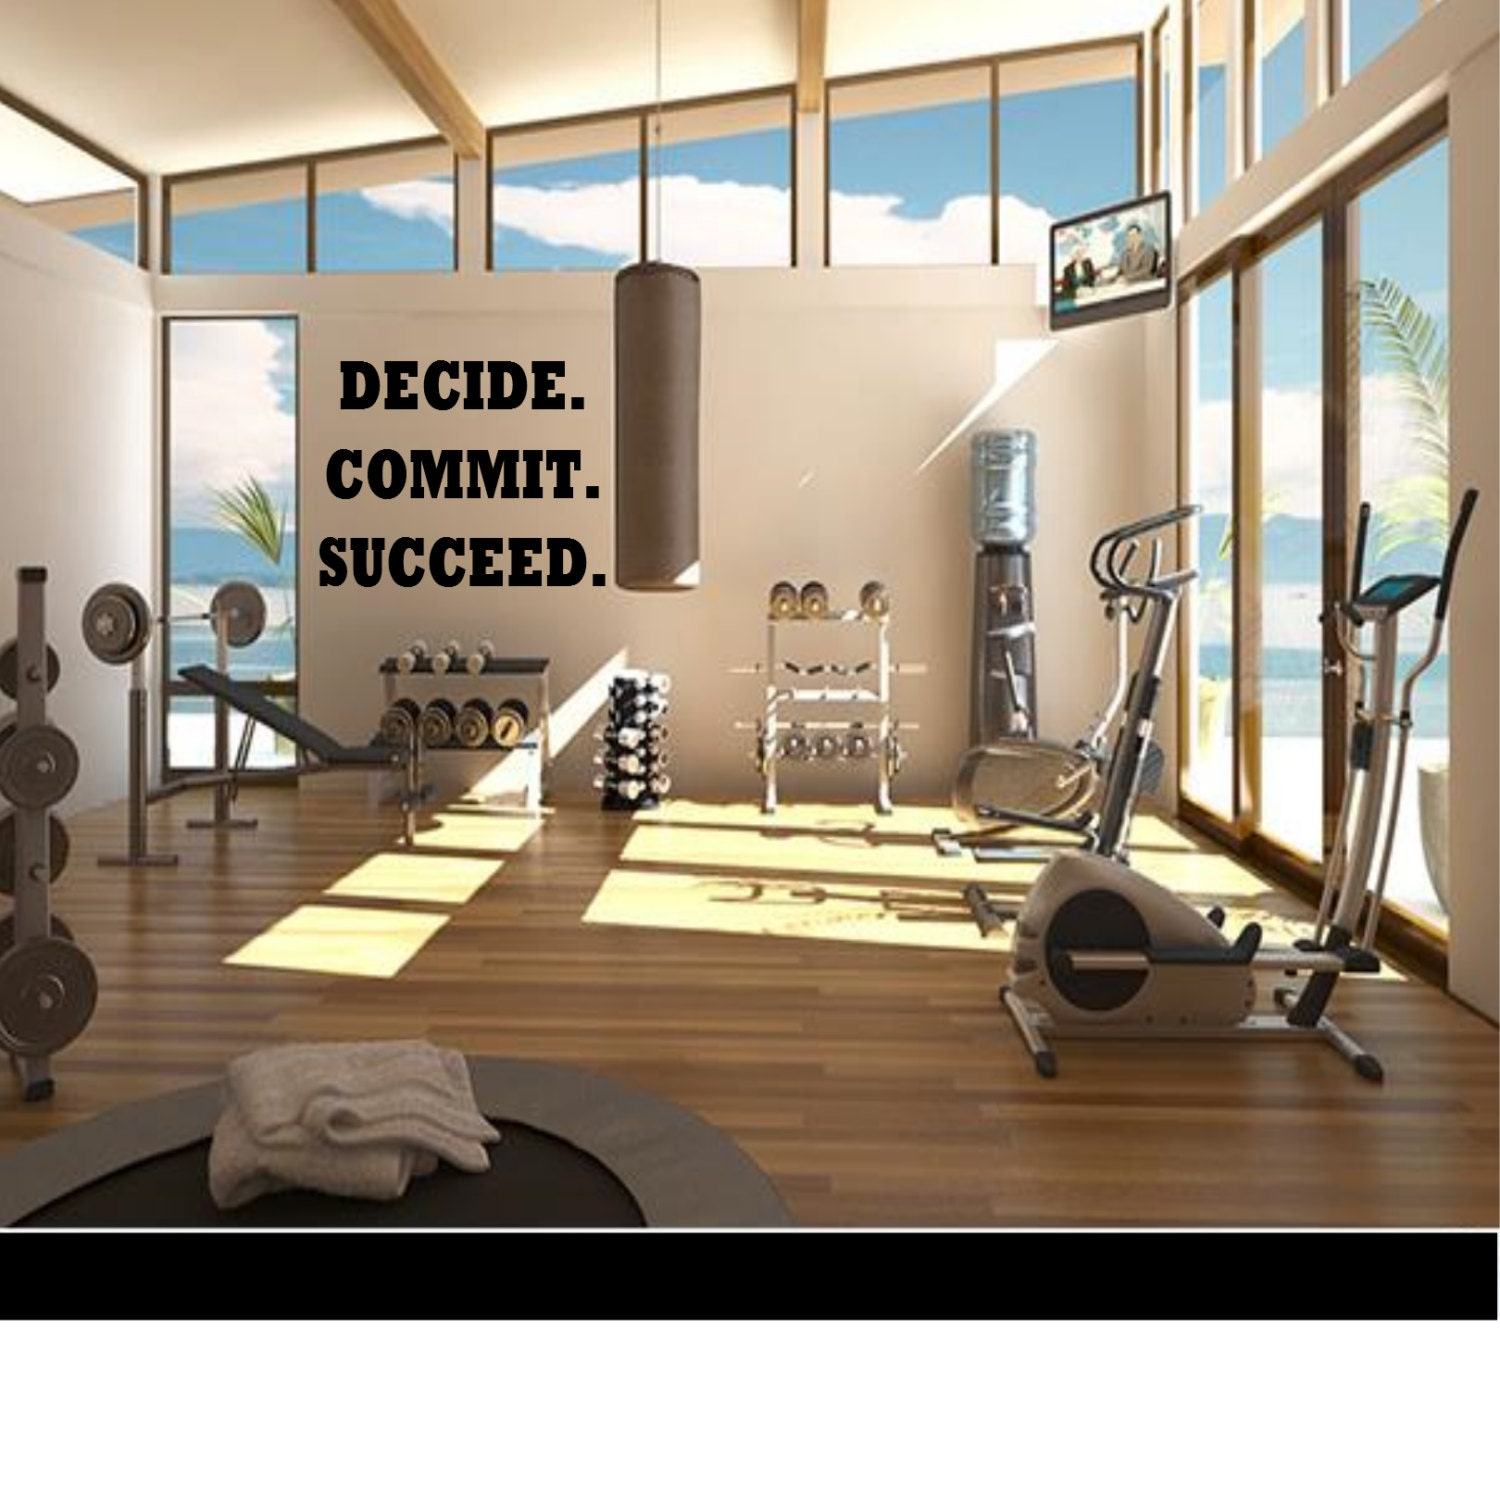 Decide commit succeed wall decal workout gym